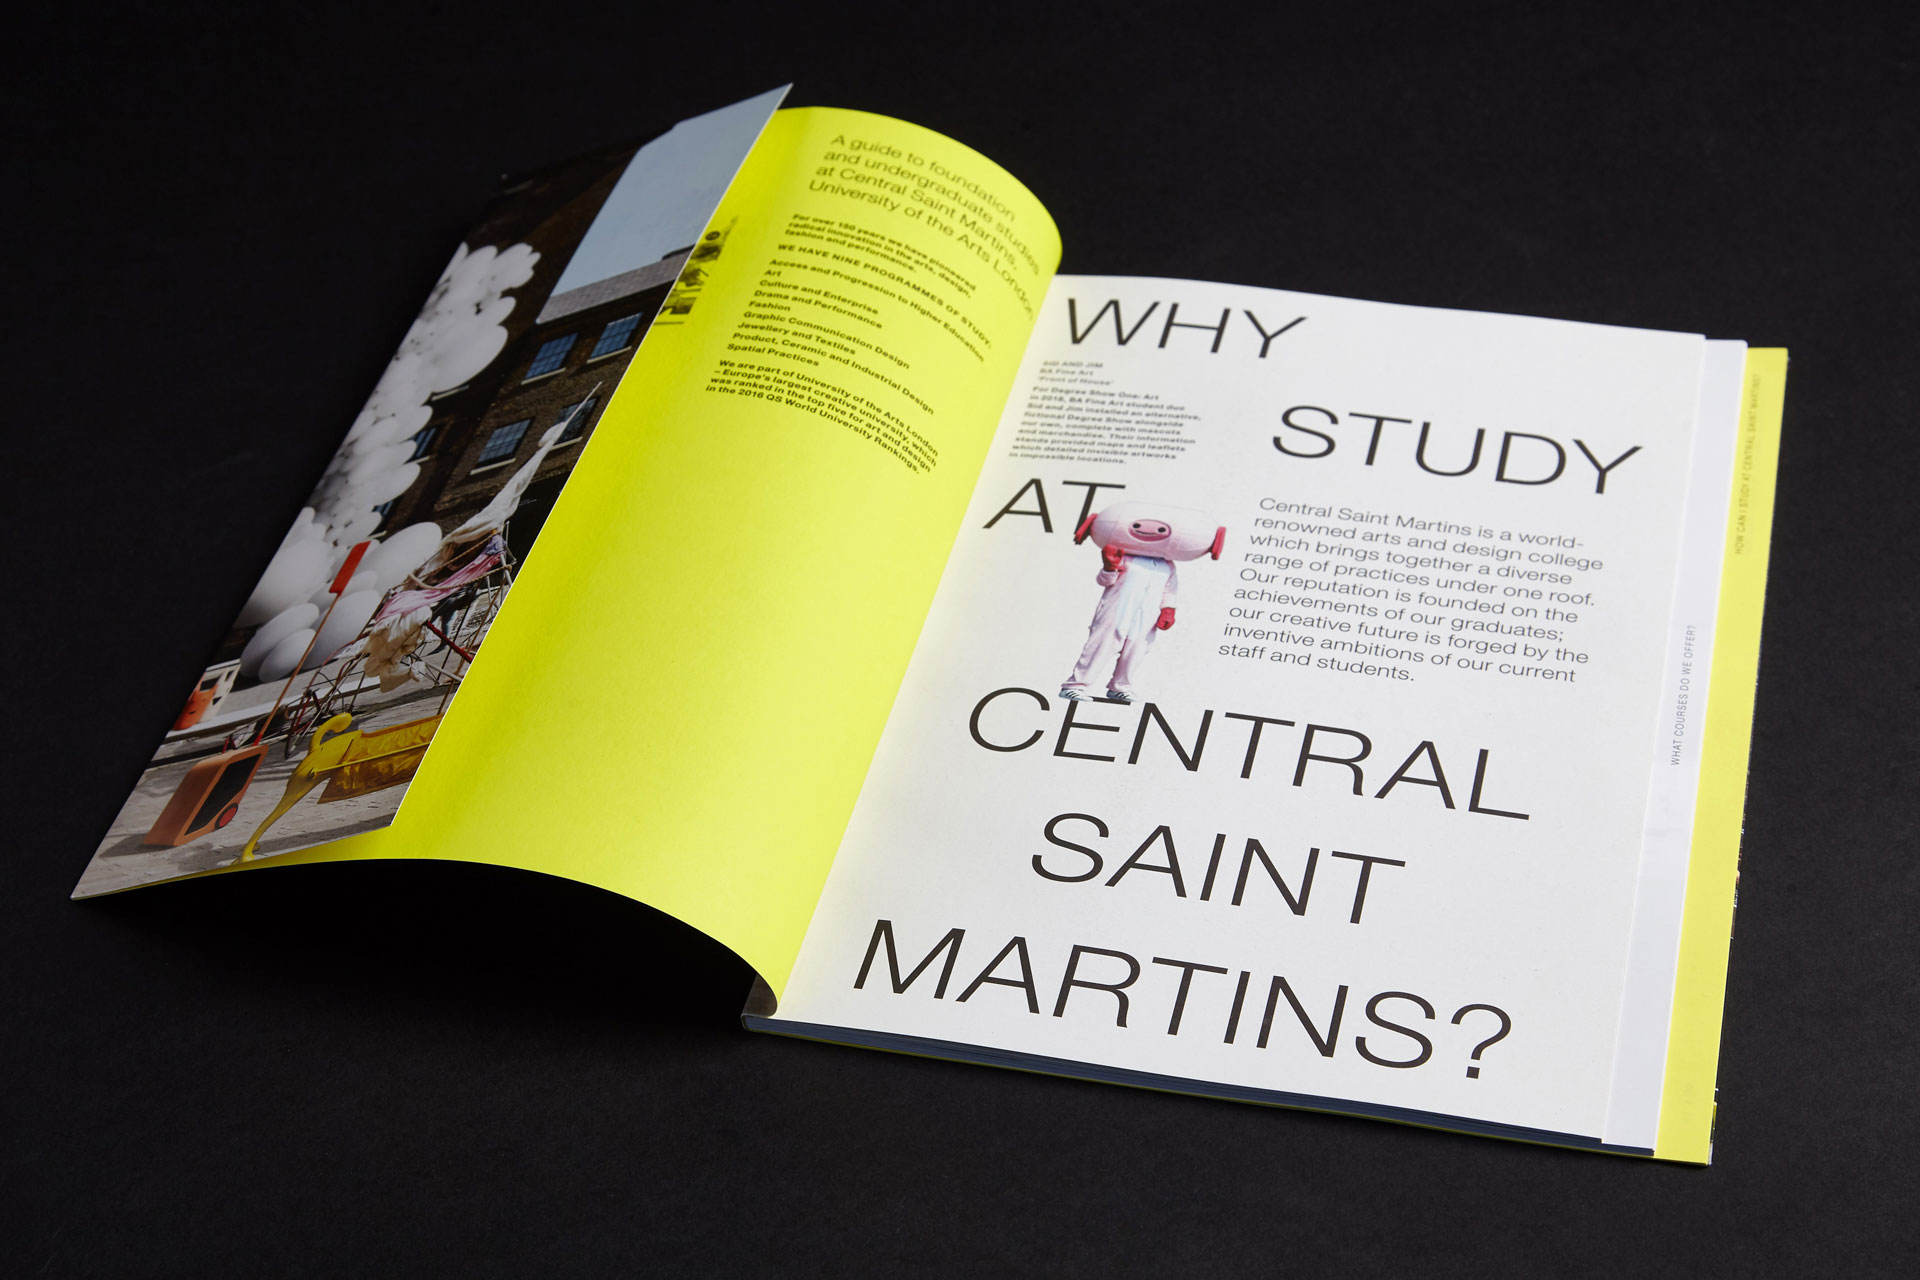 A guide to Central Saint Martins. 1st edition 19